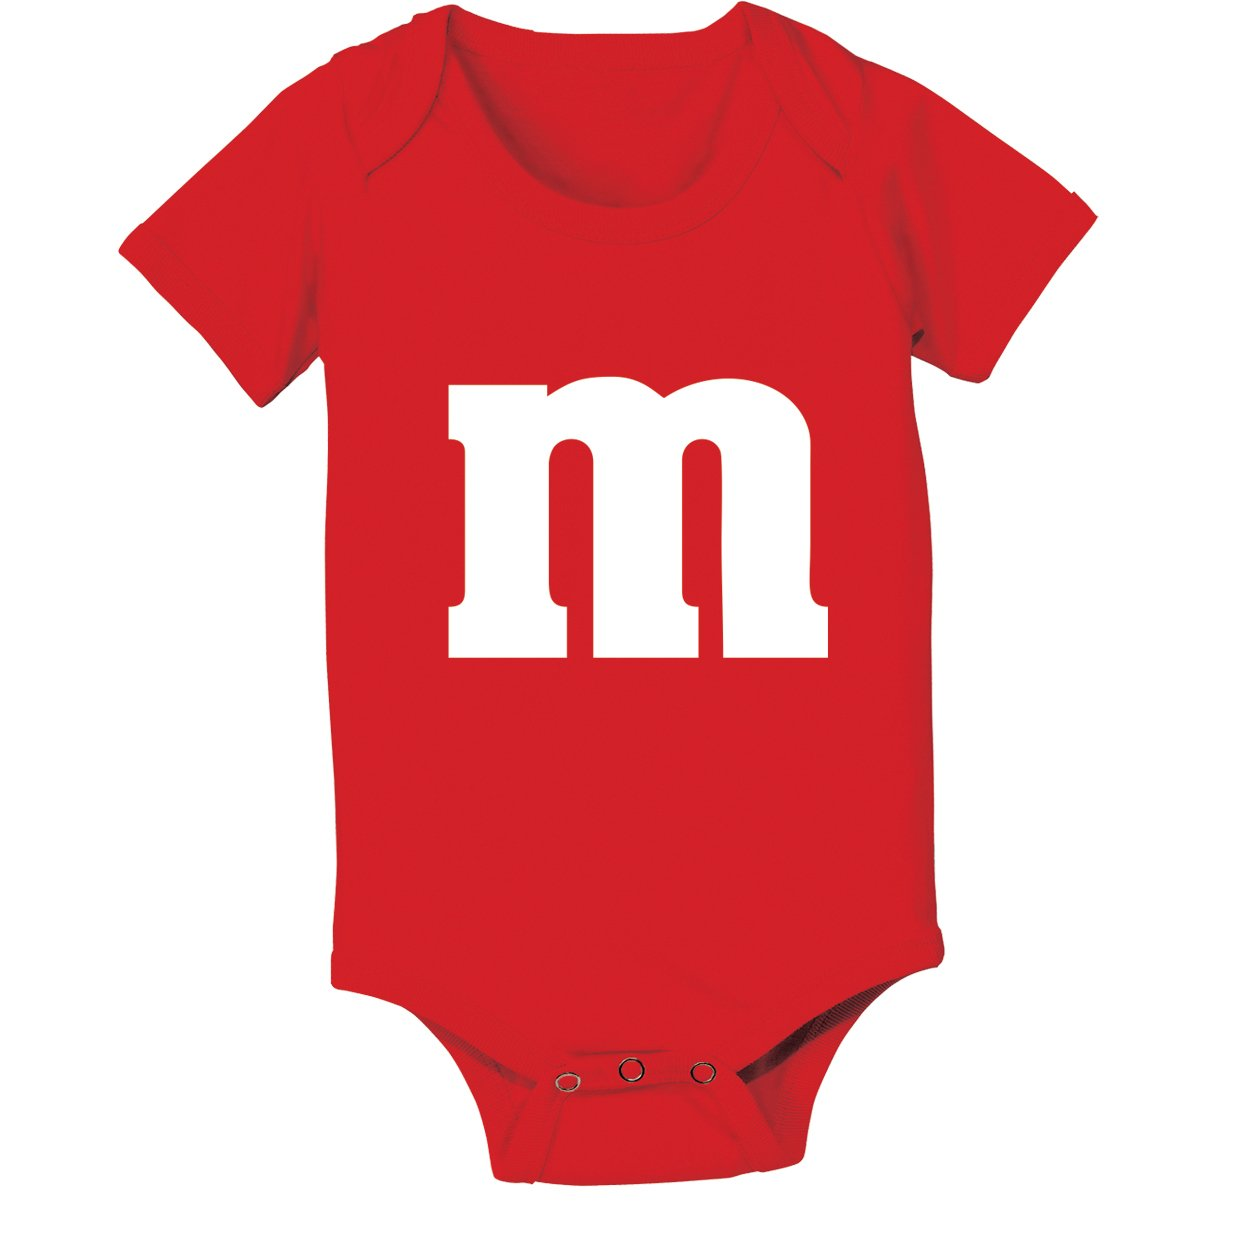 Funny Threads Outlet M Candy Costume Cute Halloween Outfit Group Kids Children Humor Baby One Piece 12 Months Red